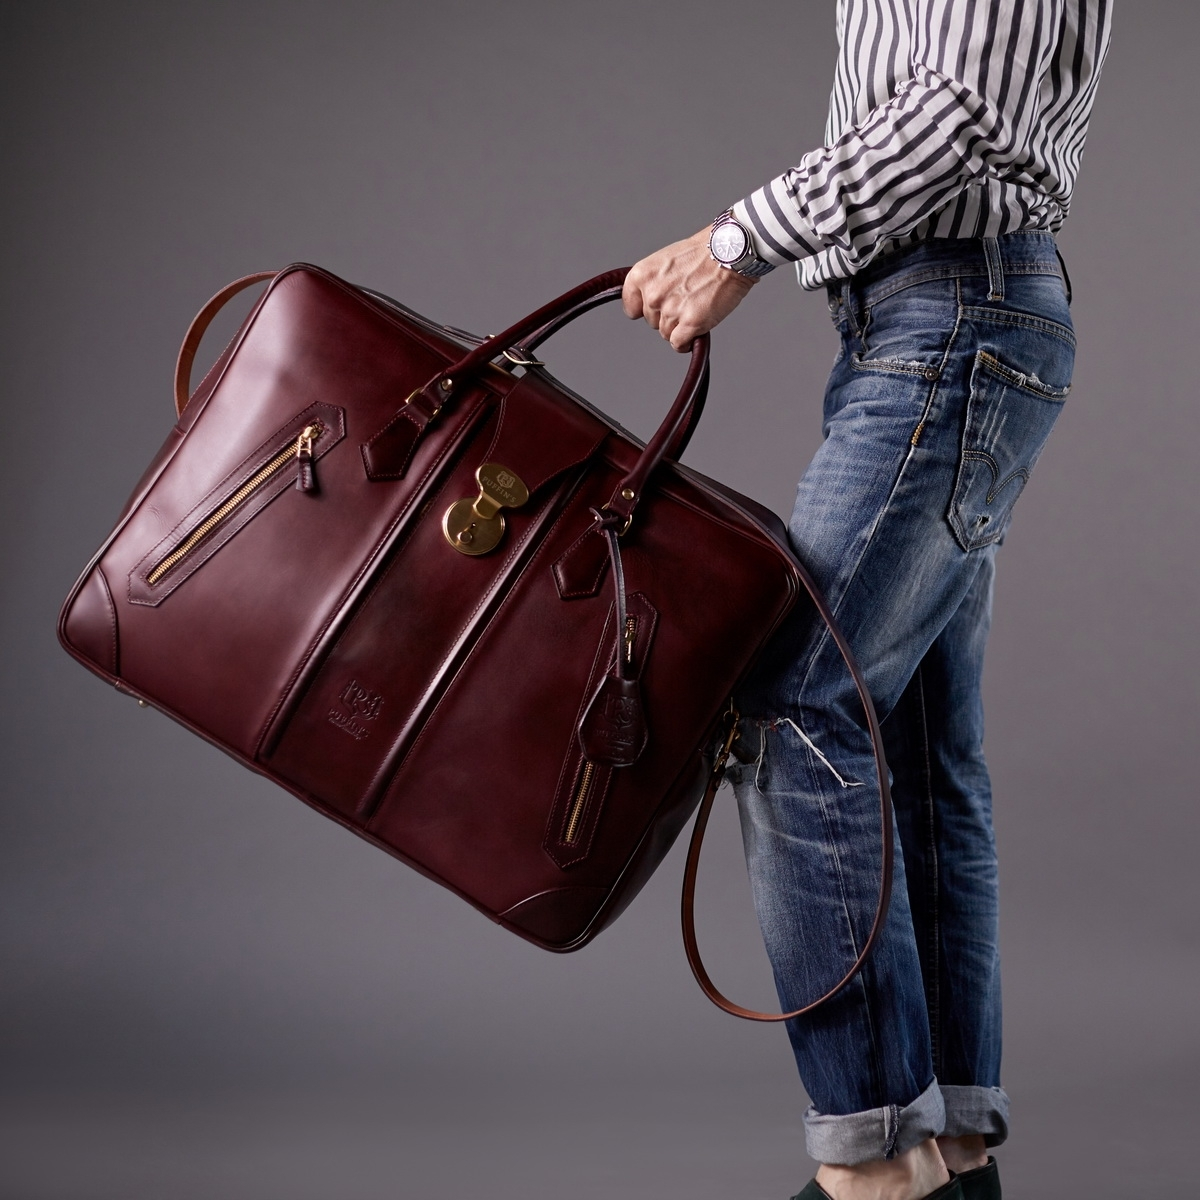 Leather suitcase HOLIDAY bordeaux